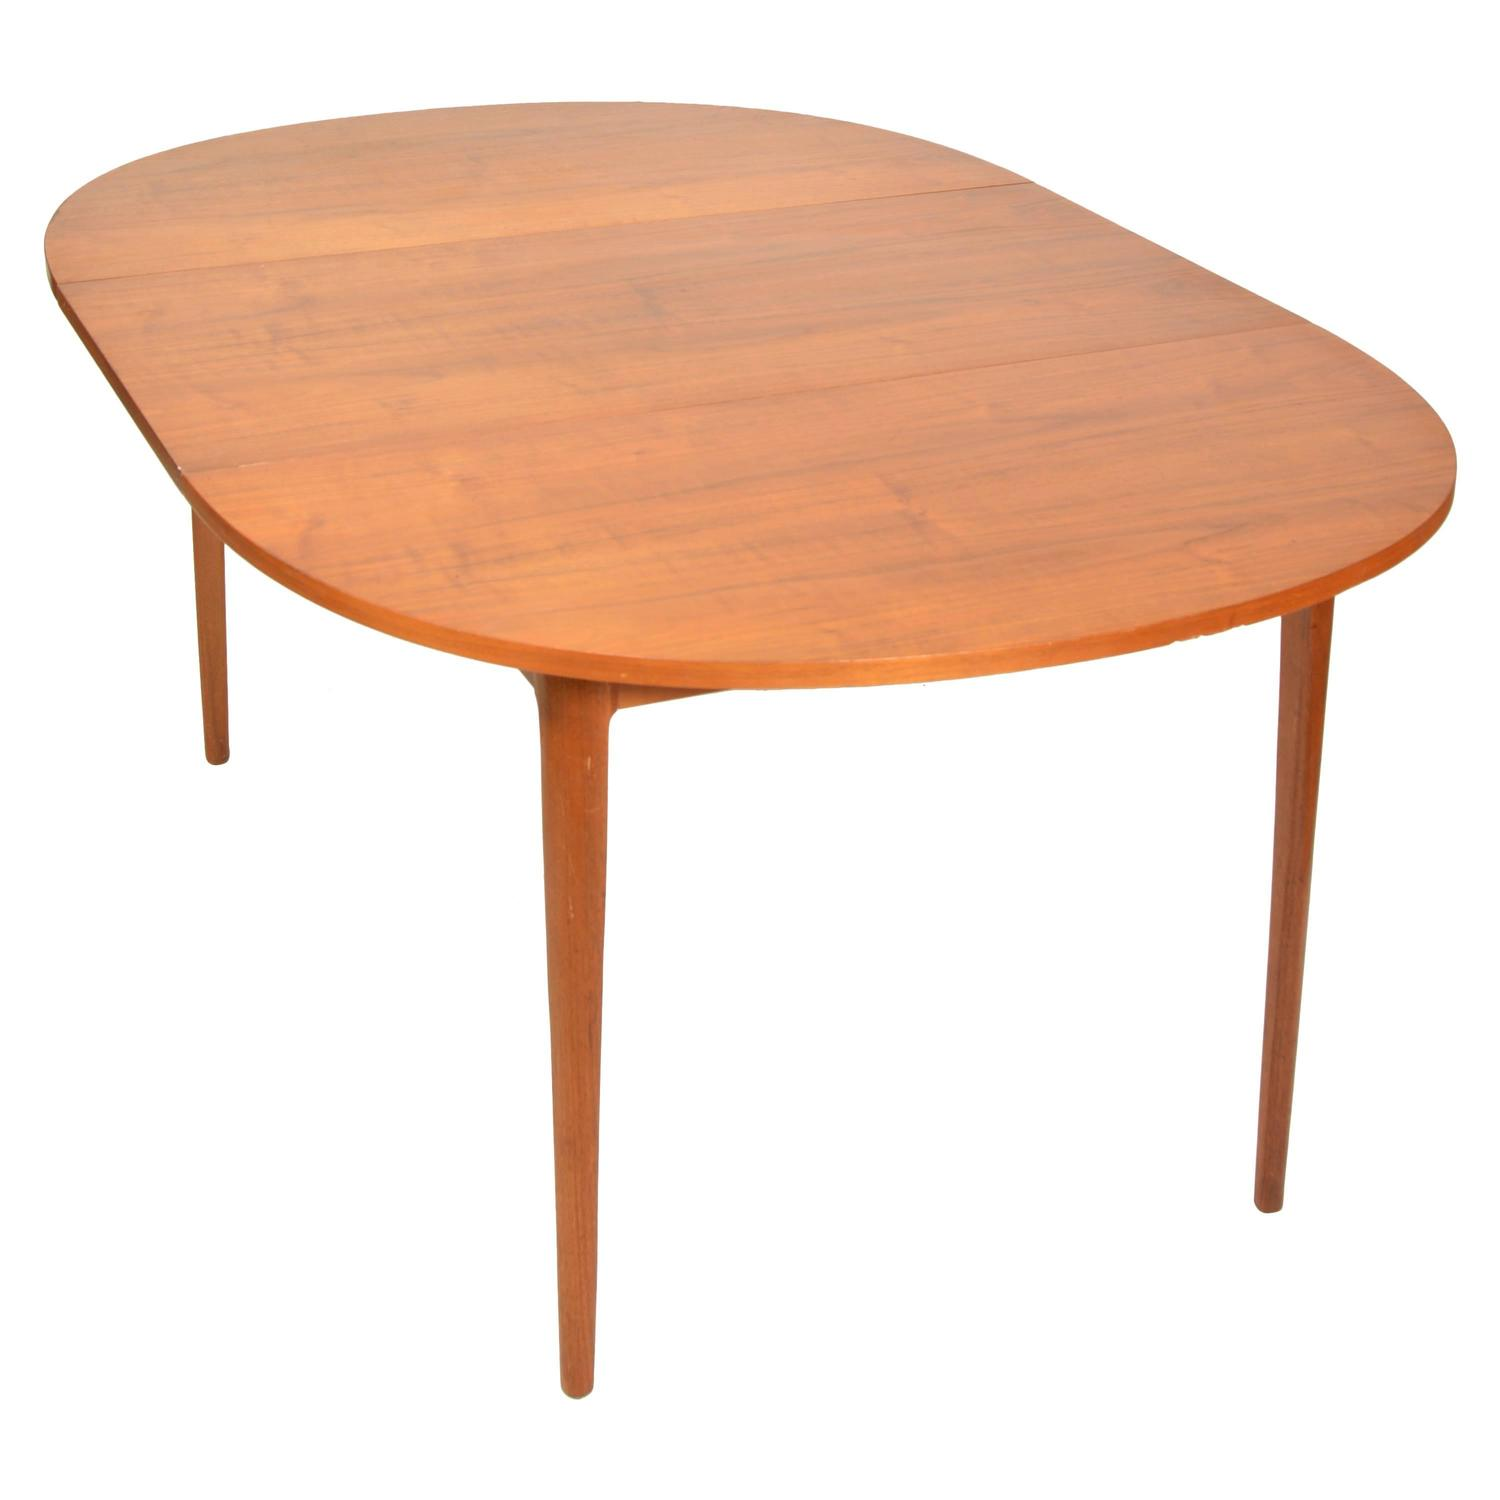 Kipp Stewart For Drexel U0027Declarationu0027 Round Dining Table In Walnut For Sale  At 1stdibs Part 62